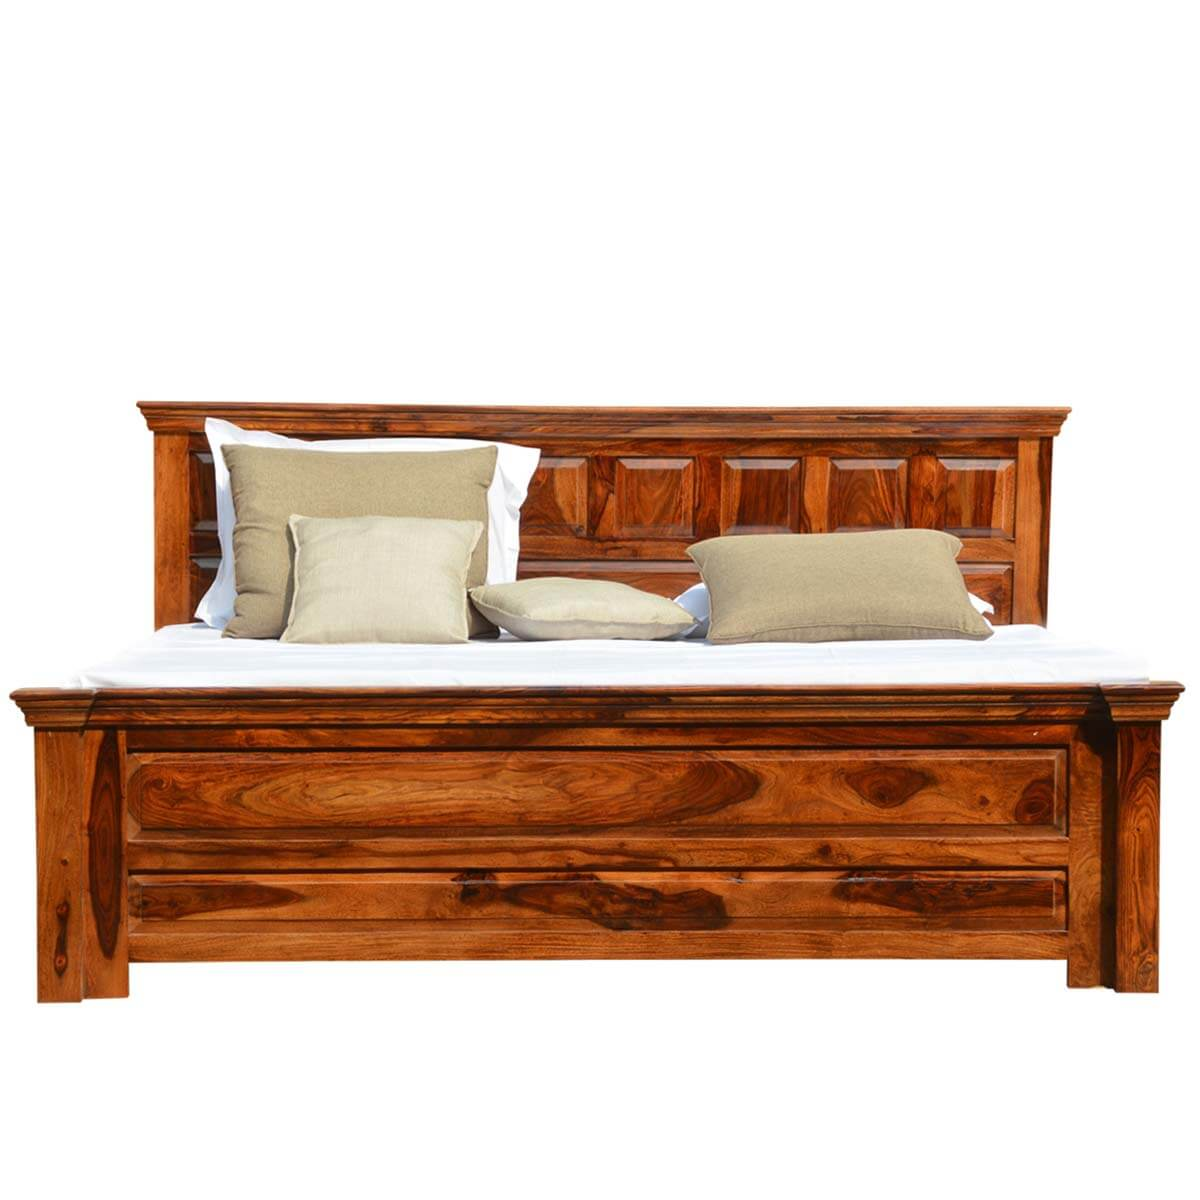 California king sized bed with storage drawer made of solid wood - Cal king bed with drawers ...